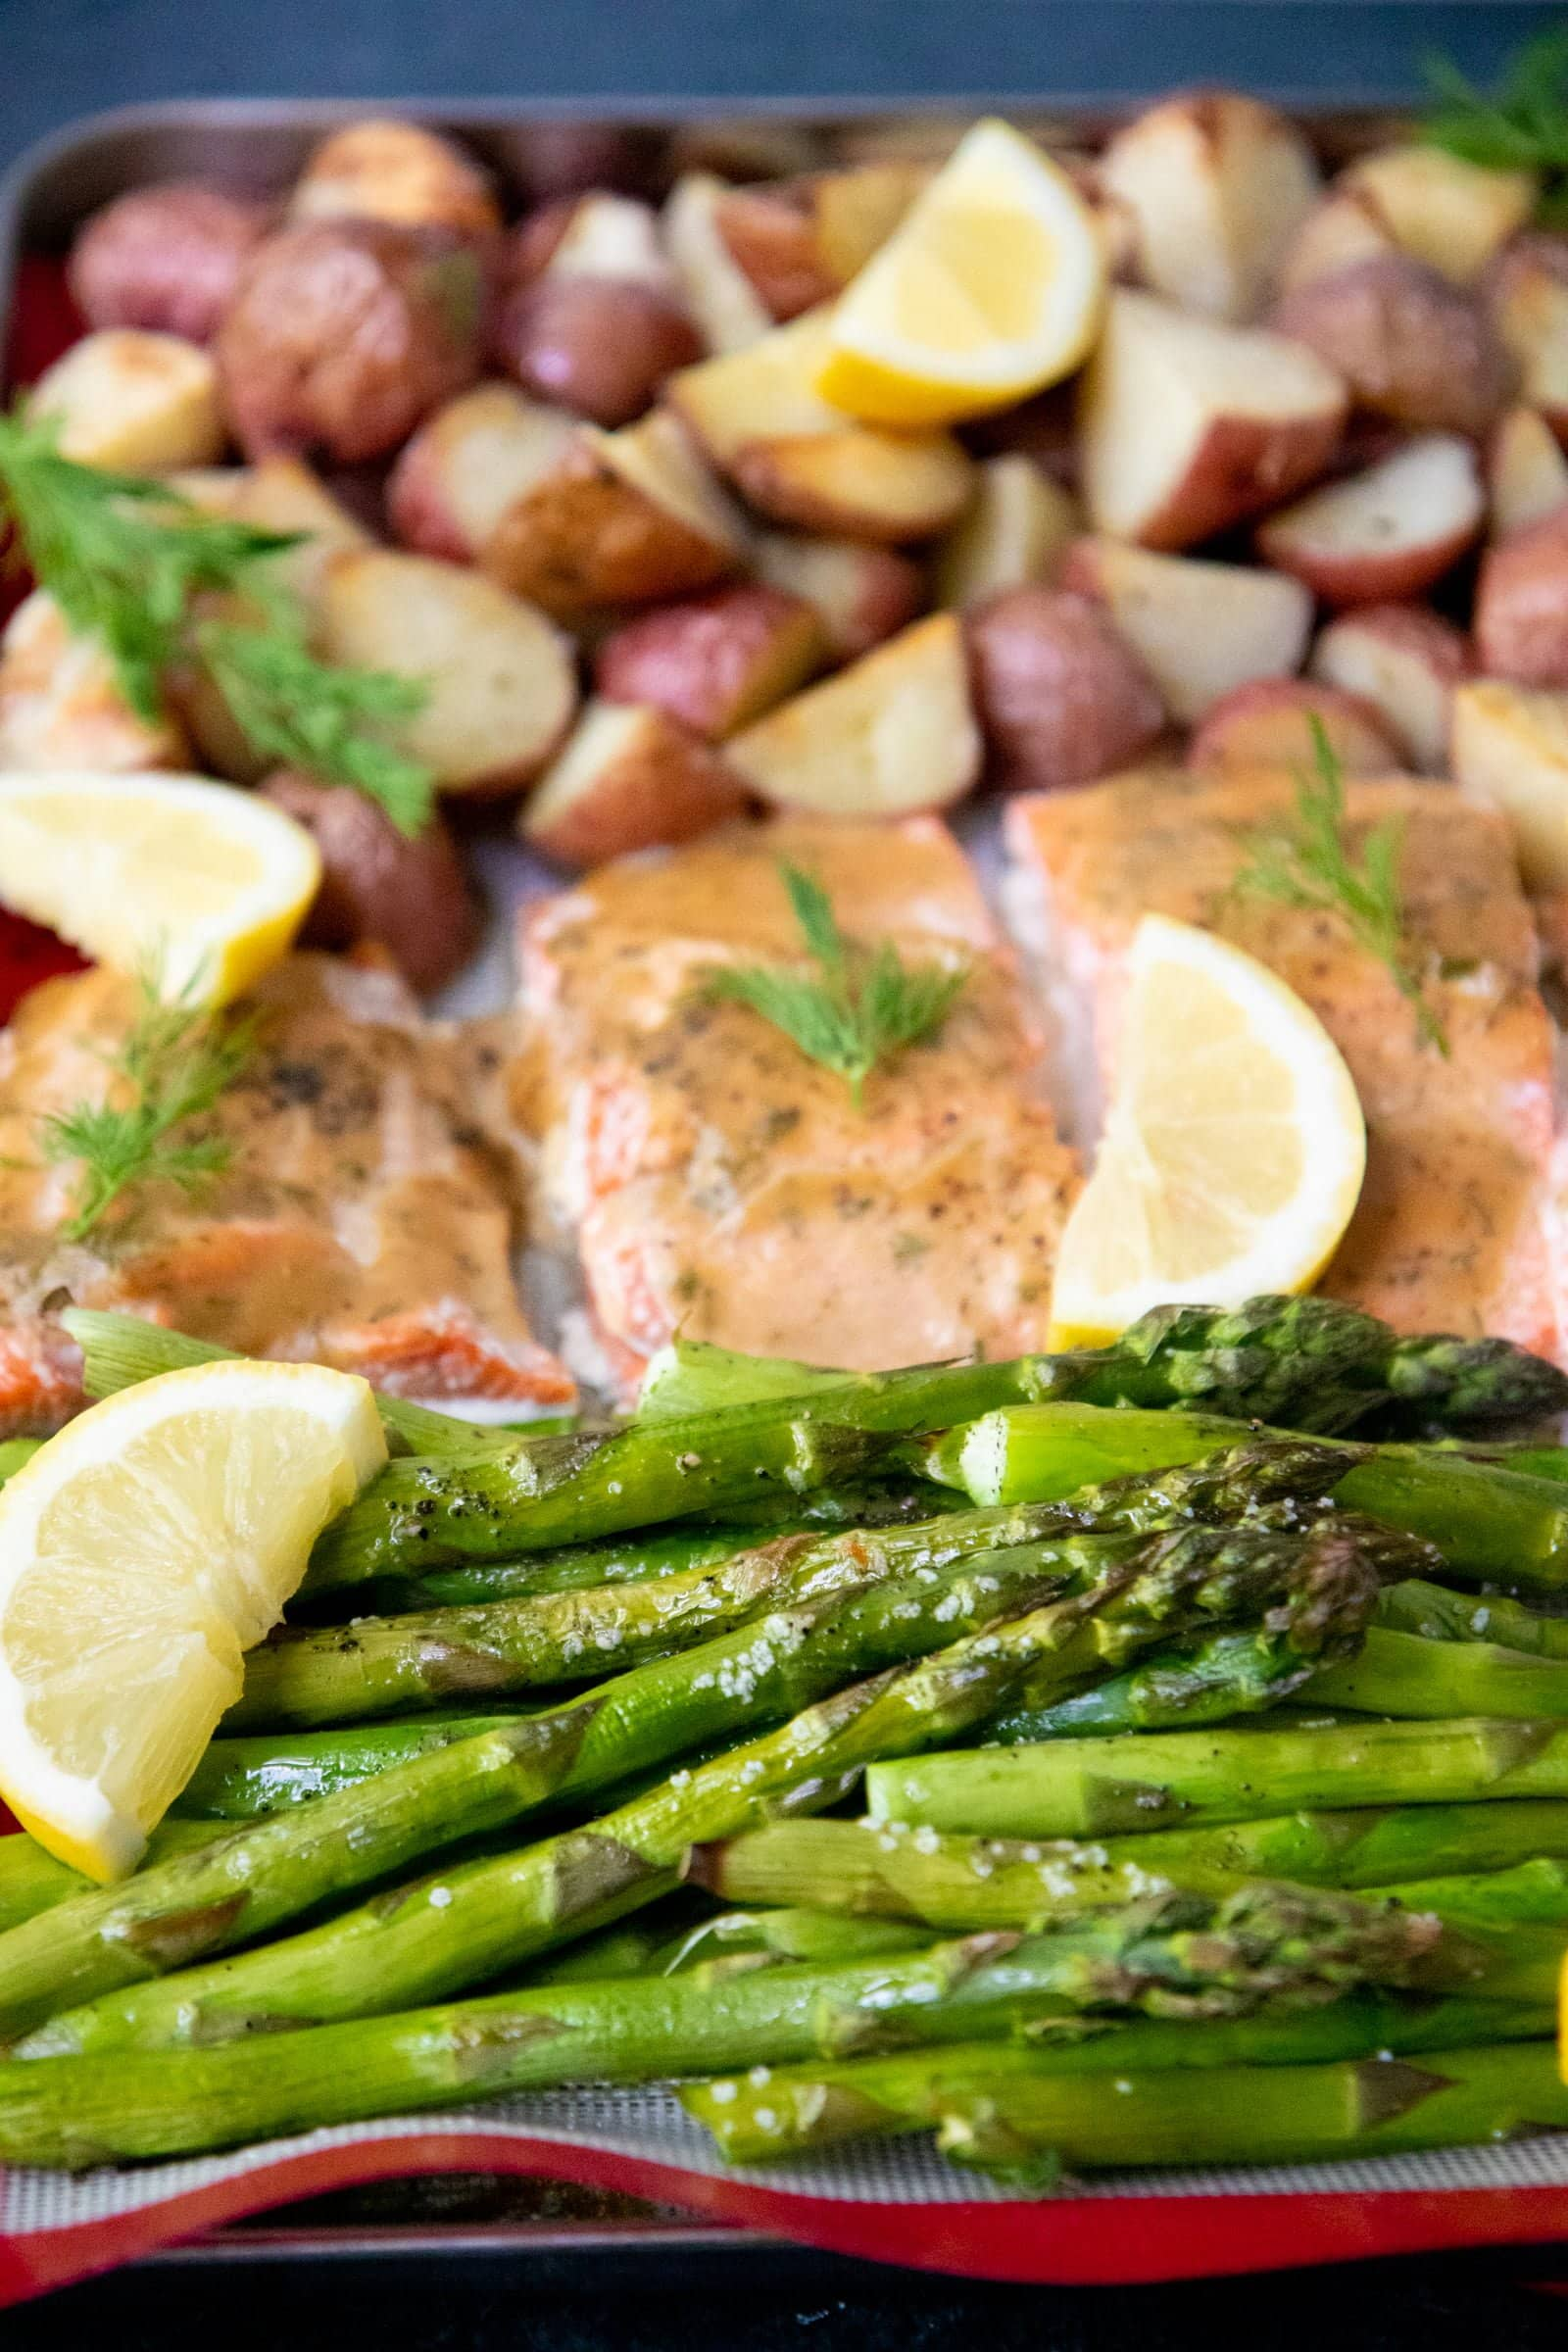 Close-up of roasted asparagus, salmon, and potatoes arranged on a baking sheet with fresh lemon and herbs.